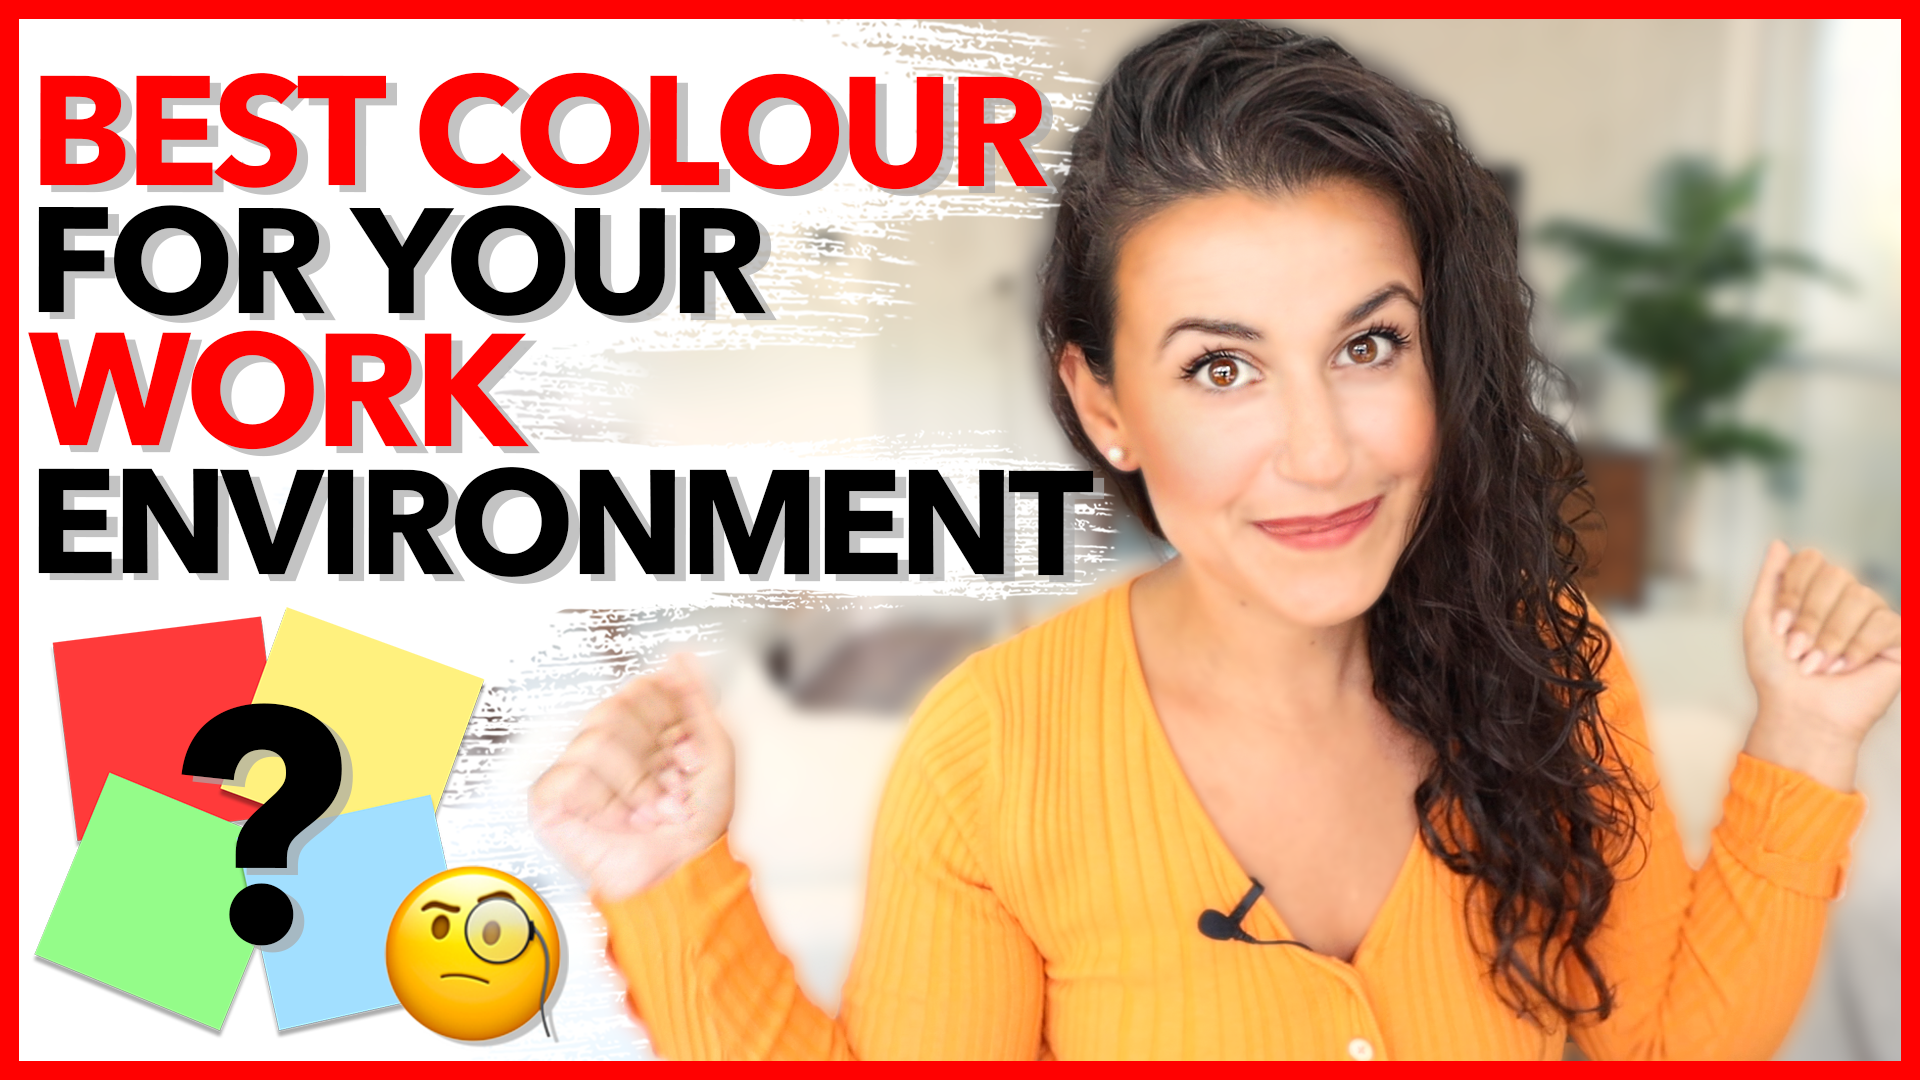 BEST Colour for your Work Environment!